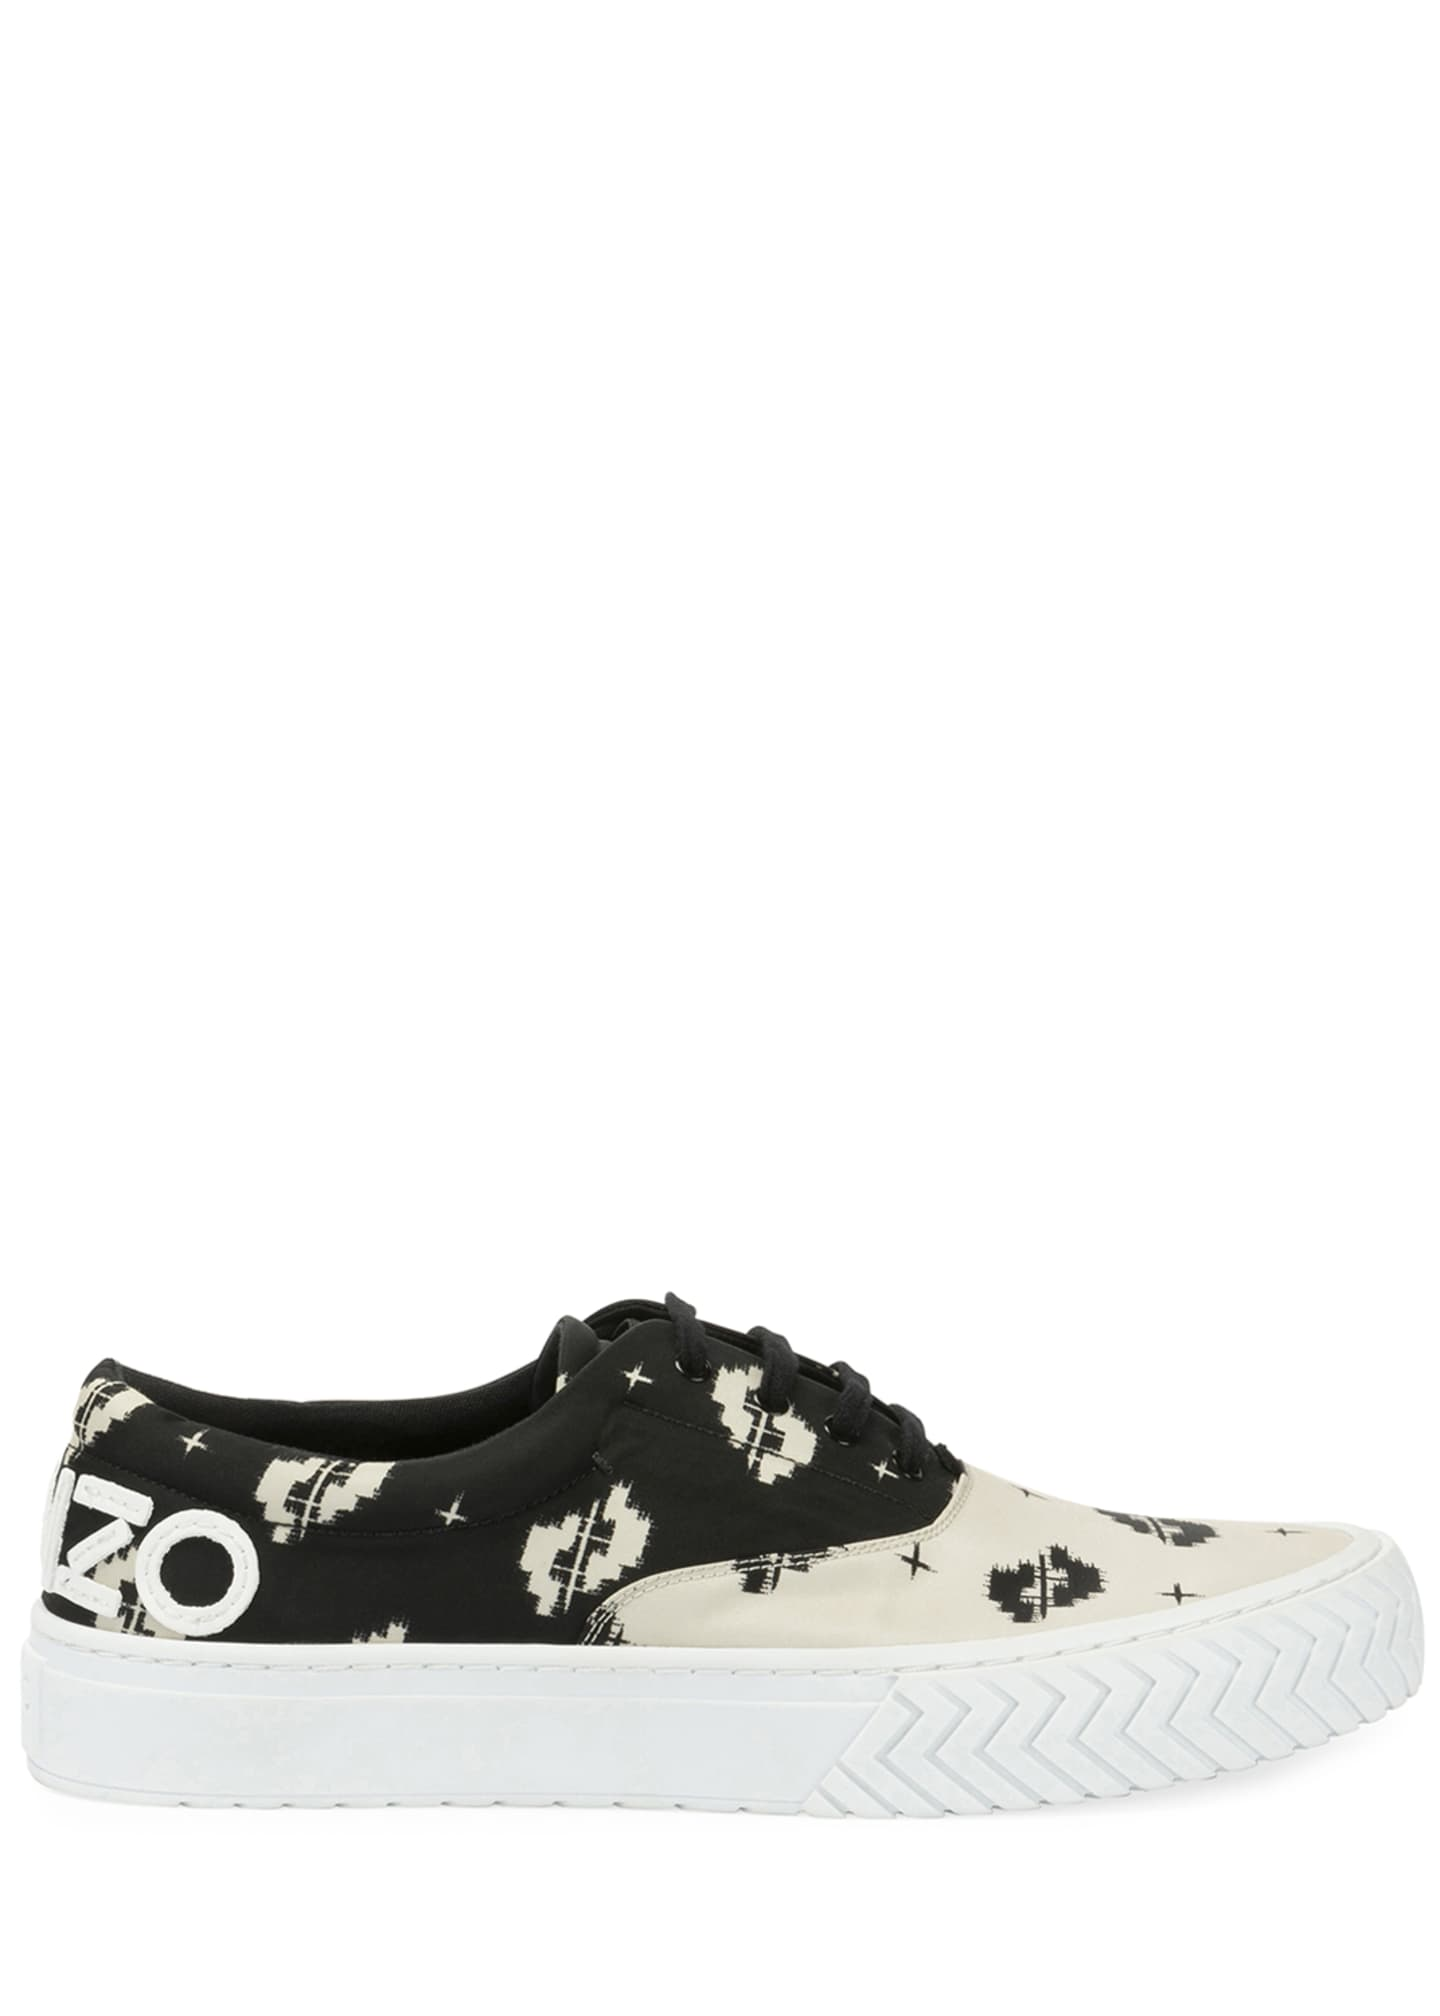 Image 4 of 4: Men's K-Skate Two-Tone Patterned Sneakers